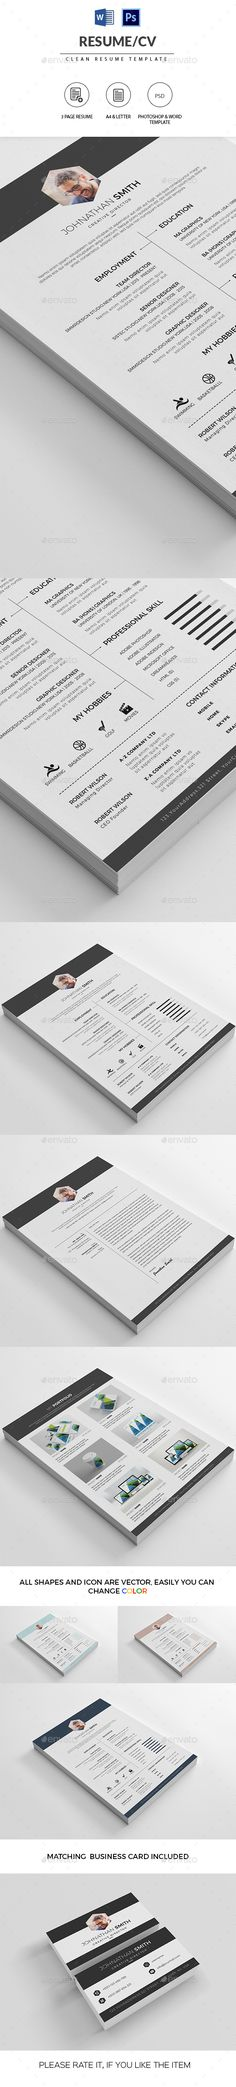 Resume Template, Resume and Photoshop - net resume